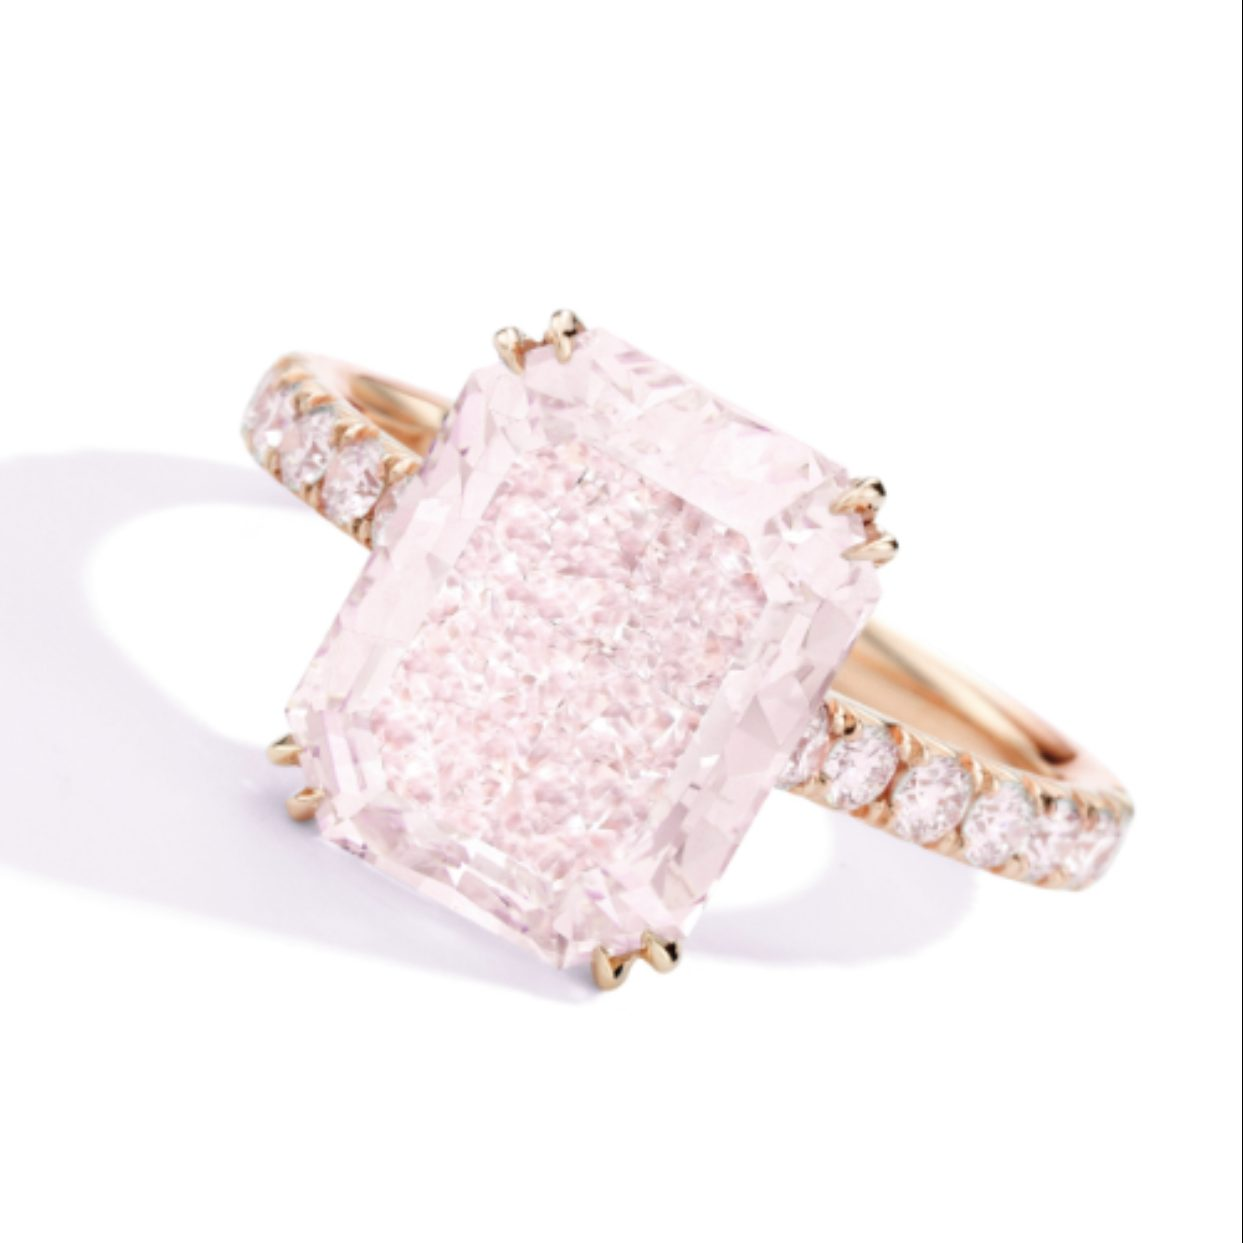 "Sotheby's New York Important Jeweles To Feature A Single ""Impressive"" Pink Diamond"